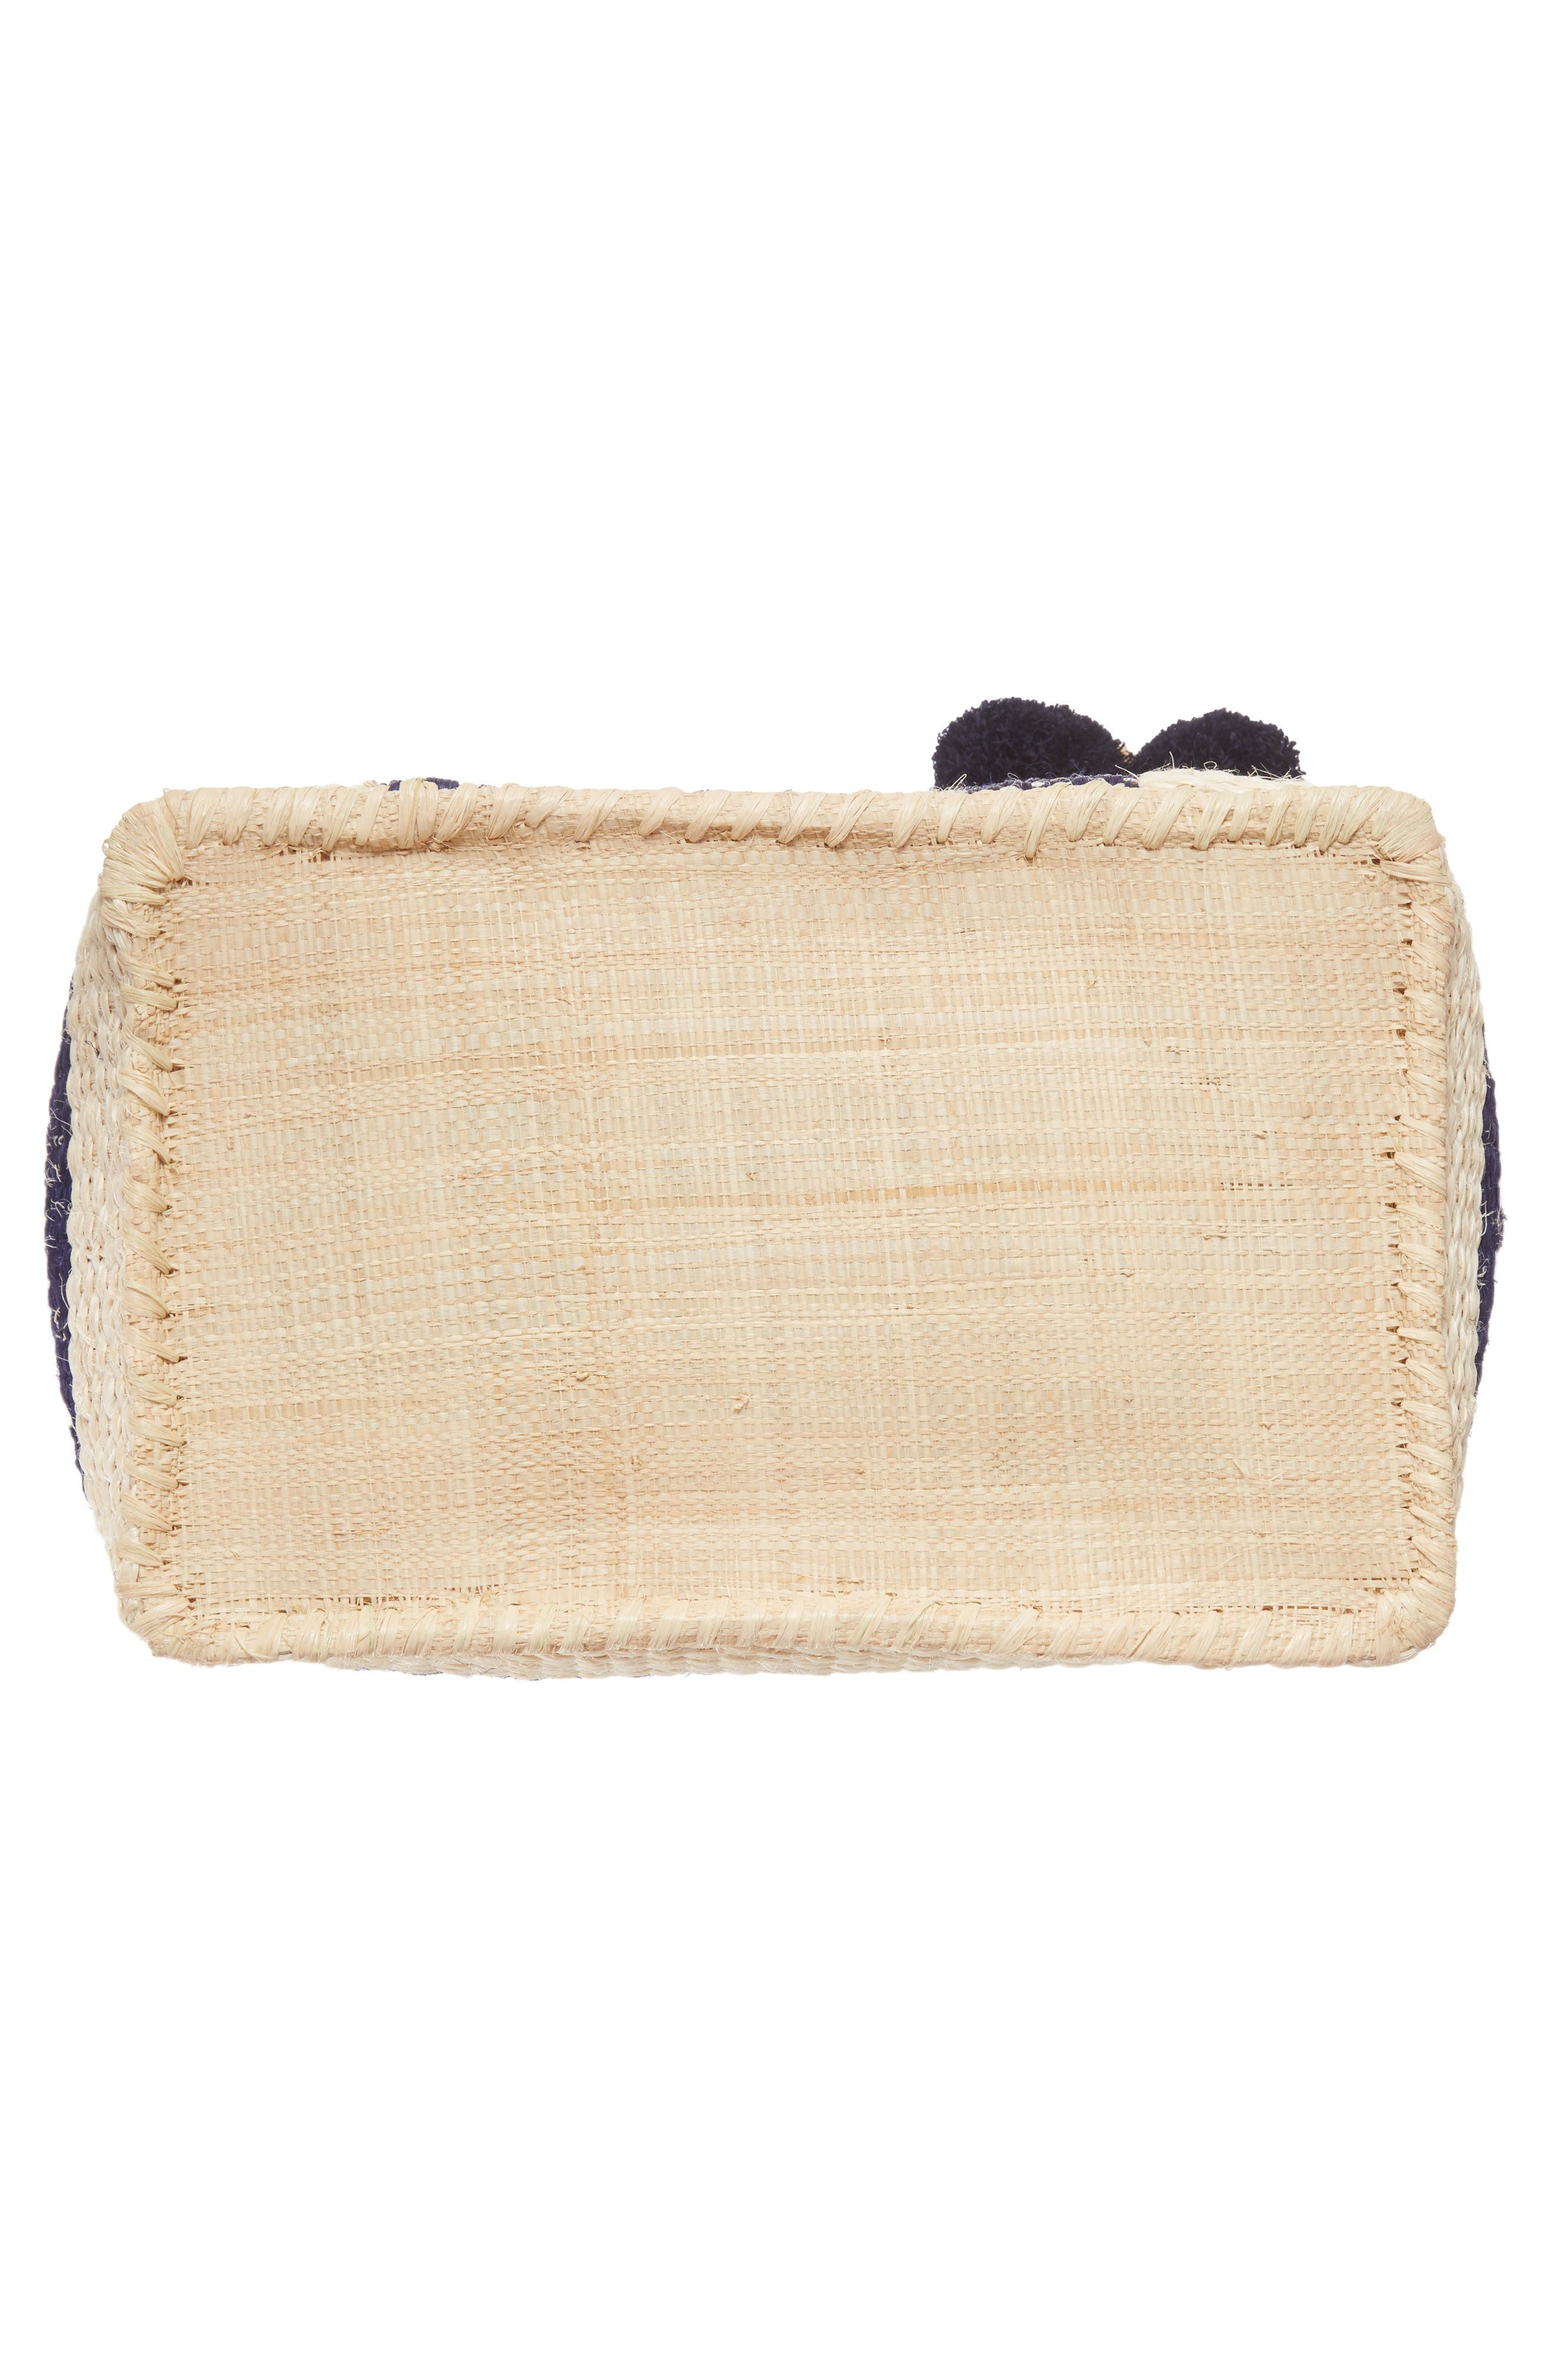 'Collins' Woven Tote,                             Alternate thumbnail 6, color,                             Navy